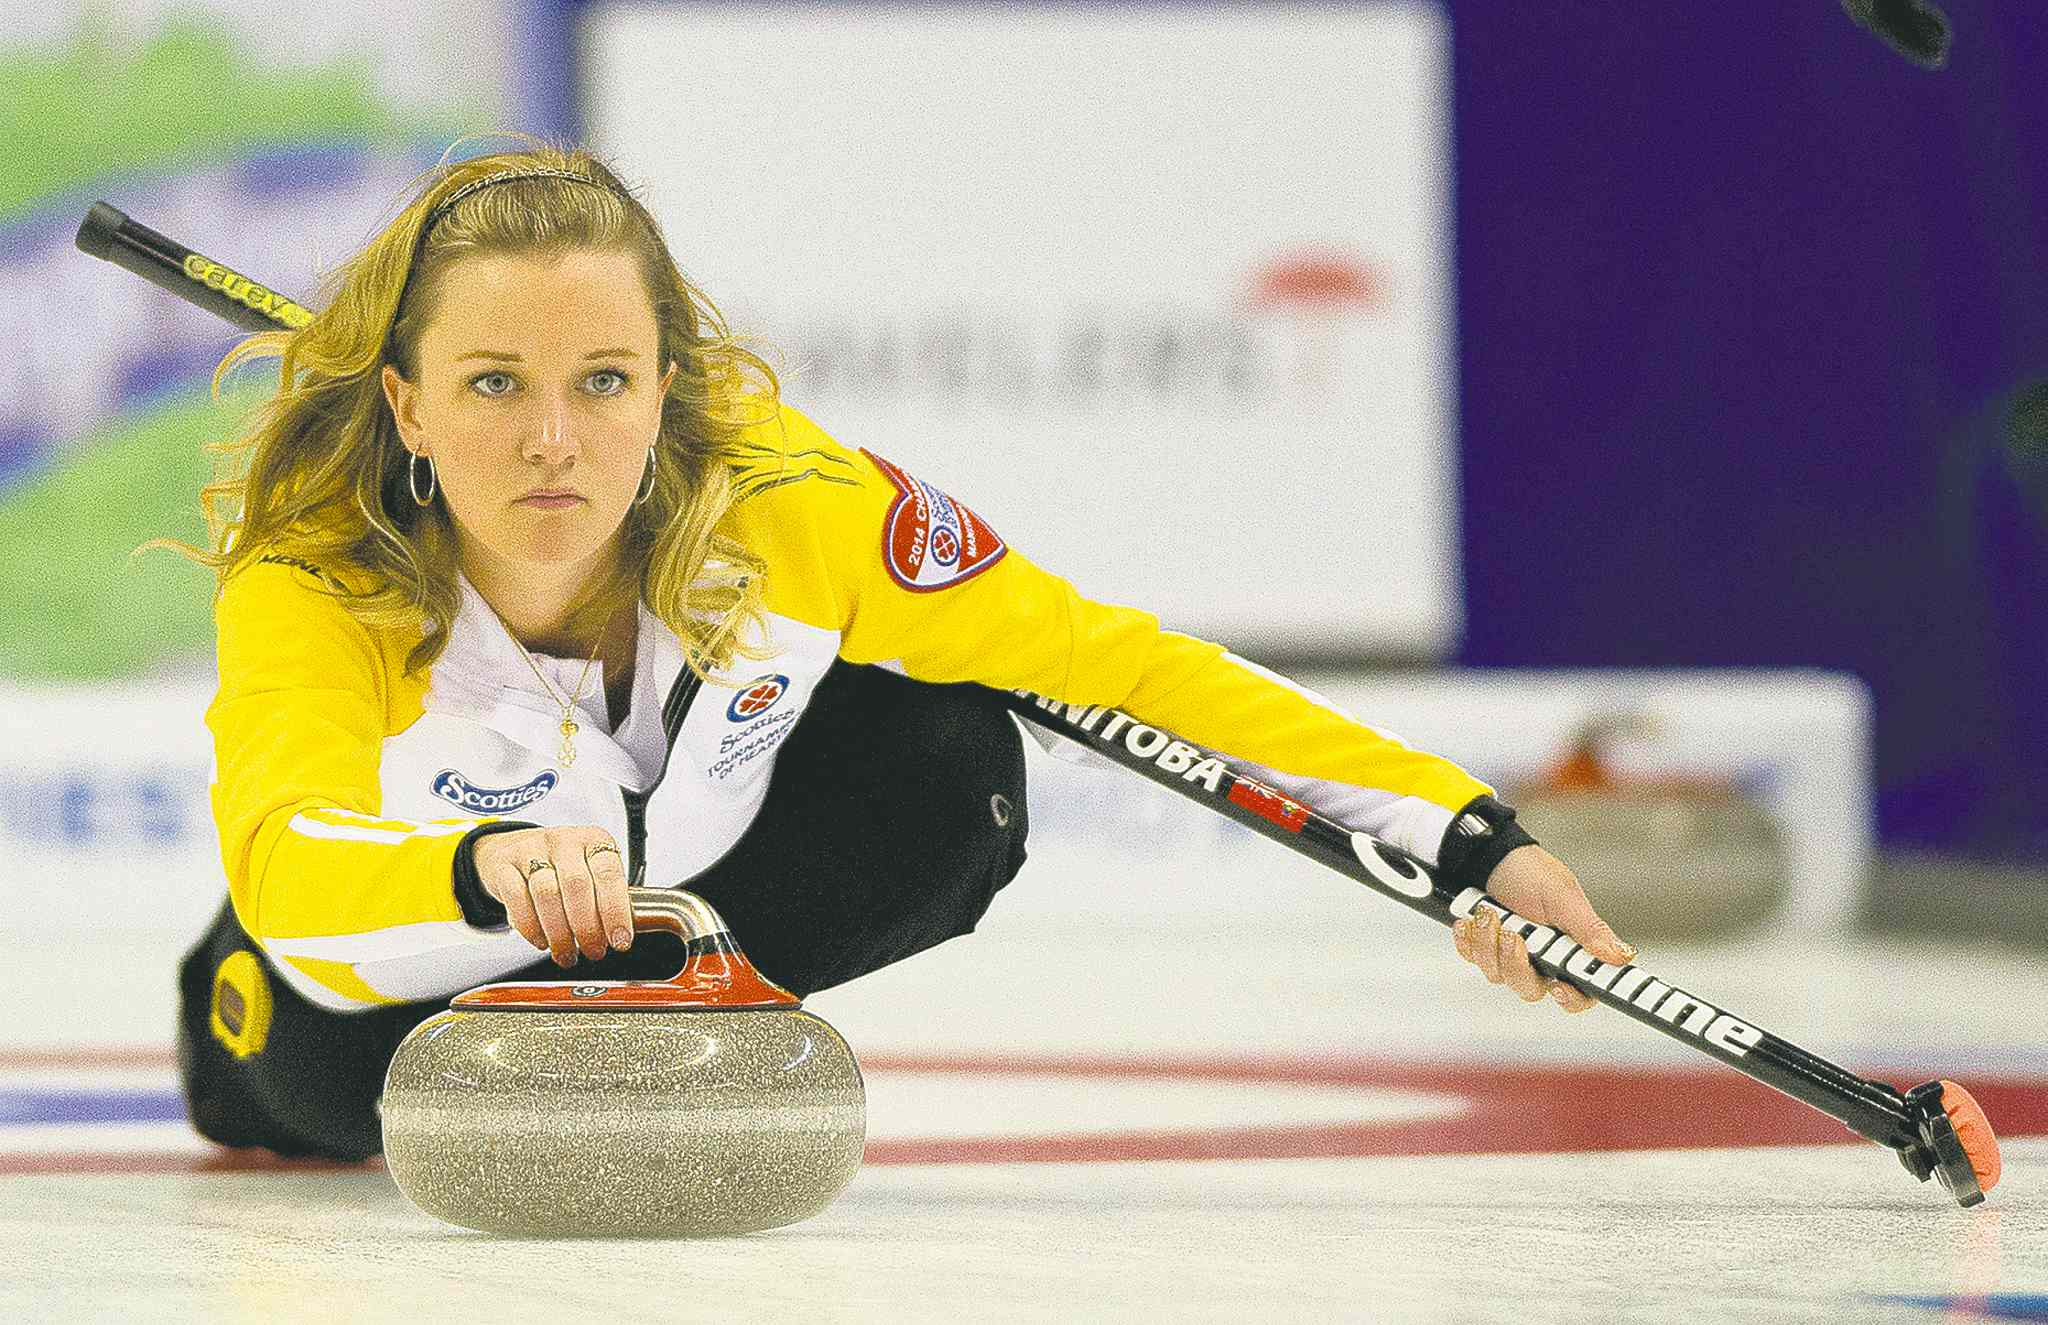 Manitoba skip Chelsea Carey won't be focusing on her upcoming Scotties opponents, knowing there will be no easy victories in Montreal.